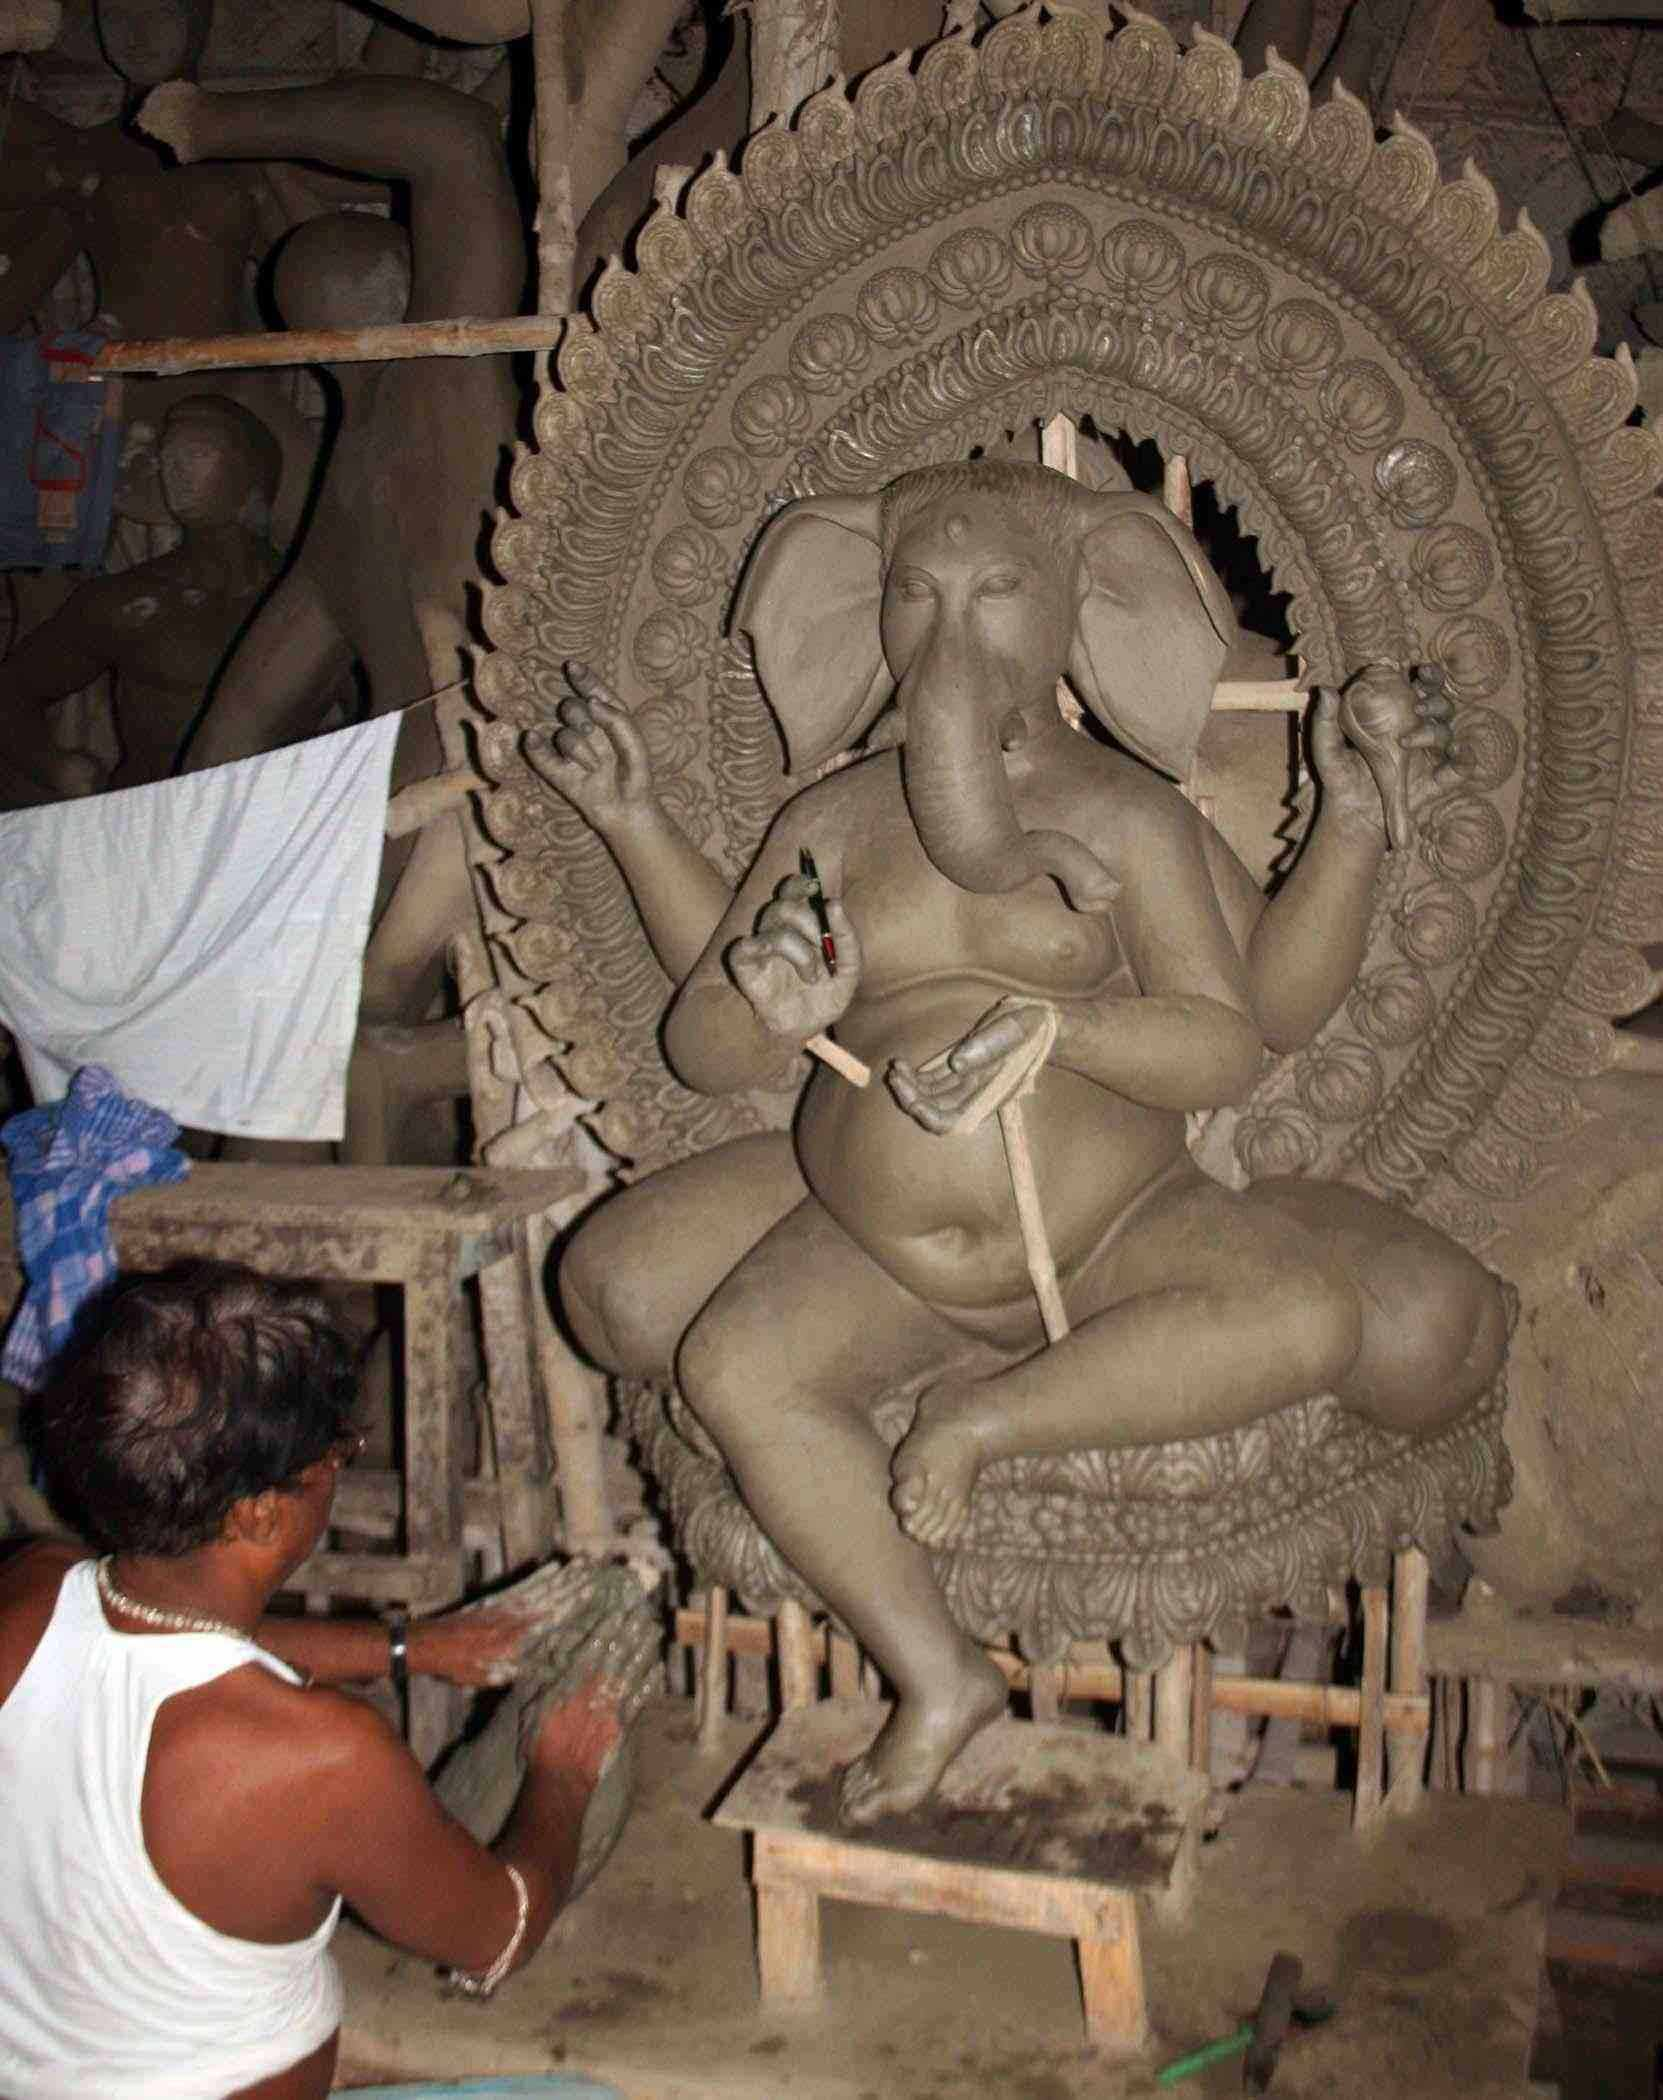 Making of Legumes Ganesh idol Photos - Pics 137356 - Boldsky Gallery